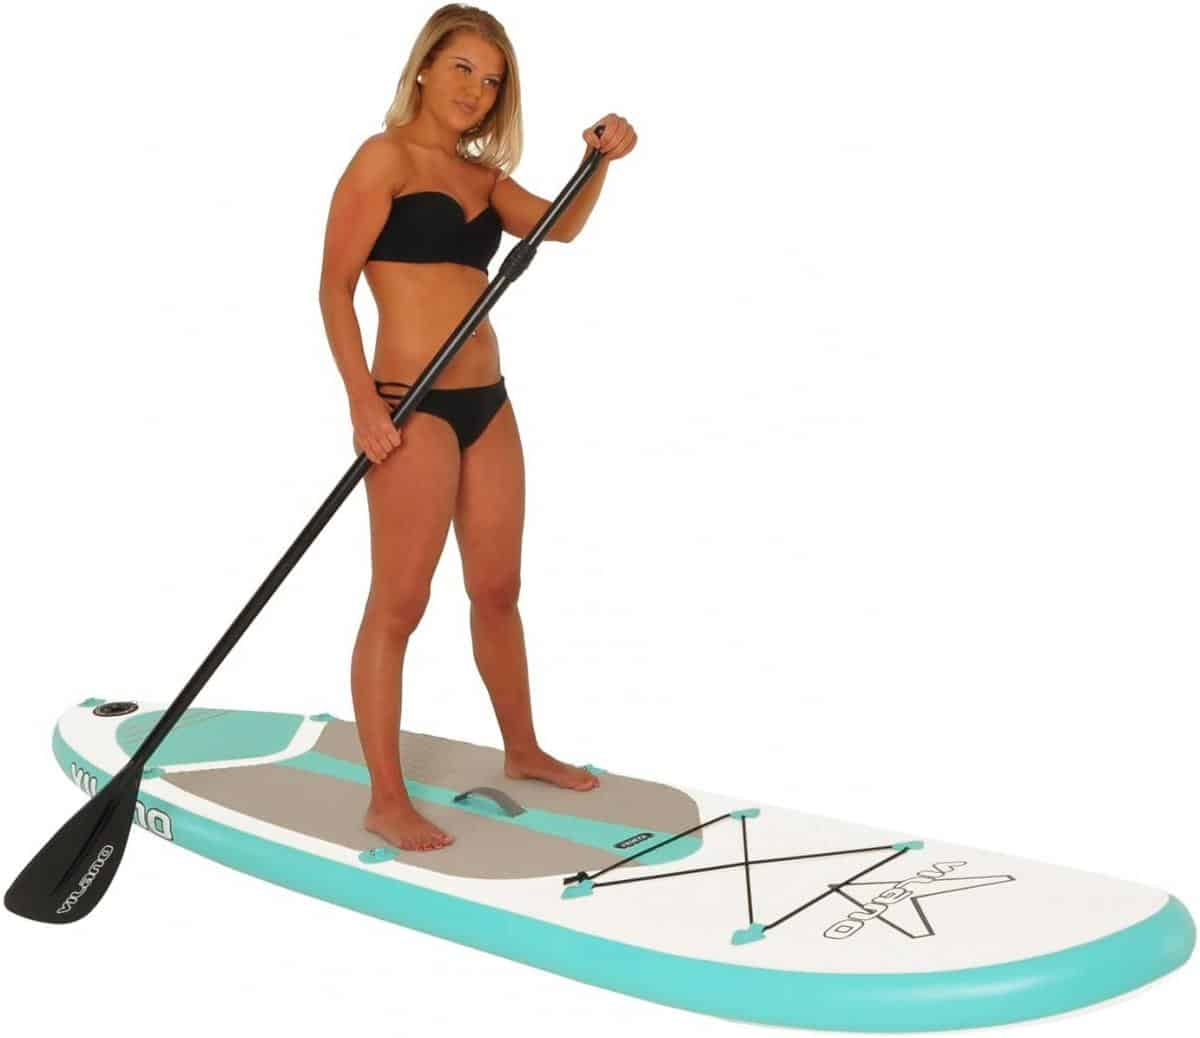 Vilano Journey Inflatable SUP Stand Up Paddle Board Kit White / Blue Review Image 1